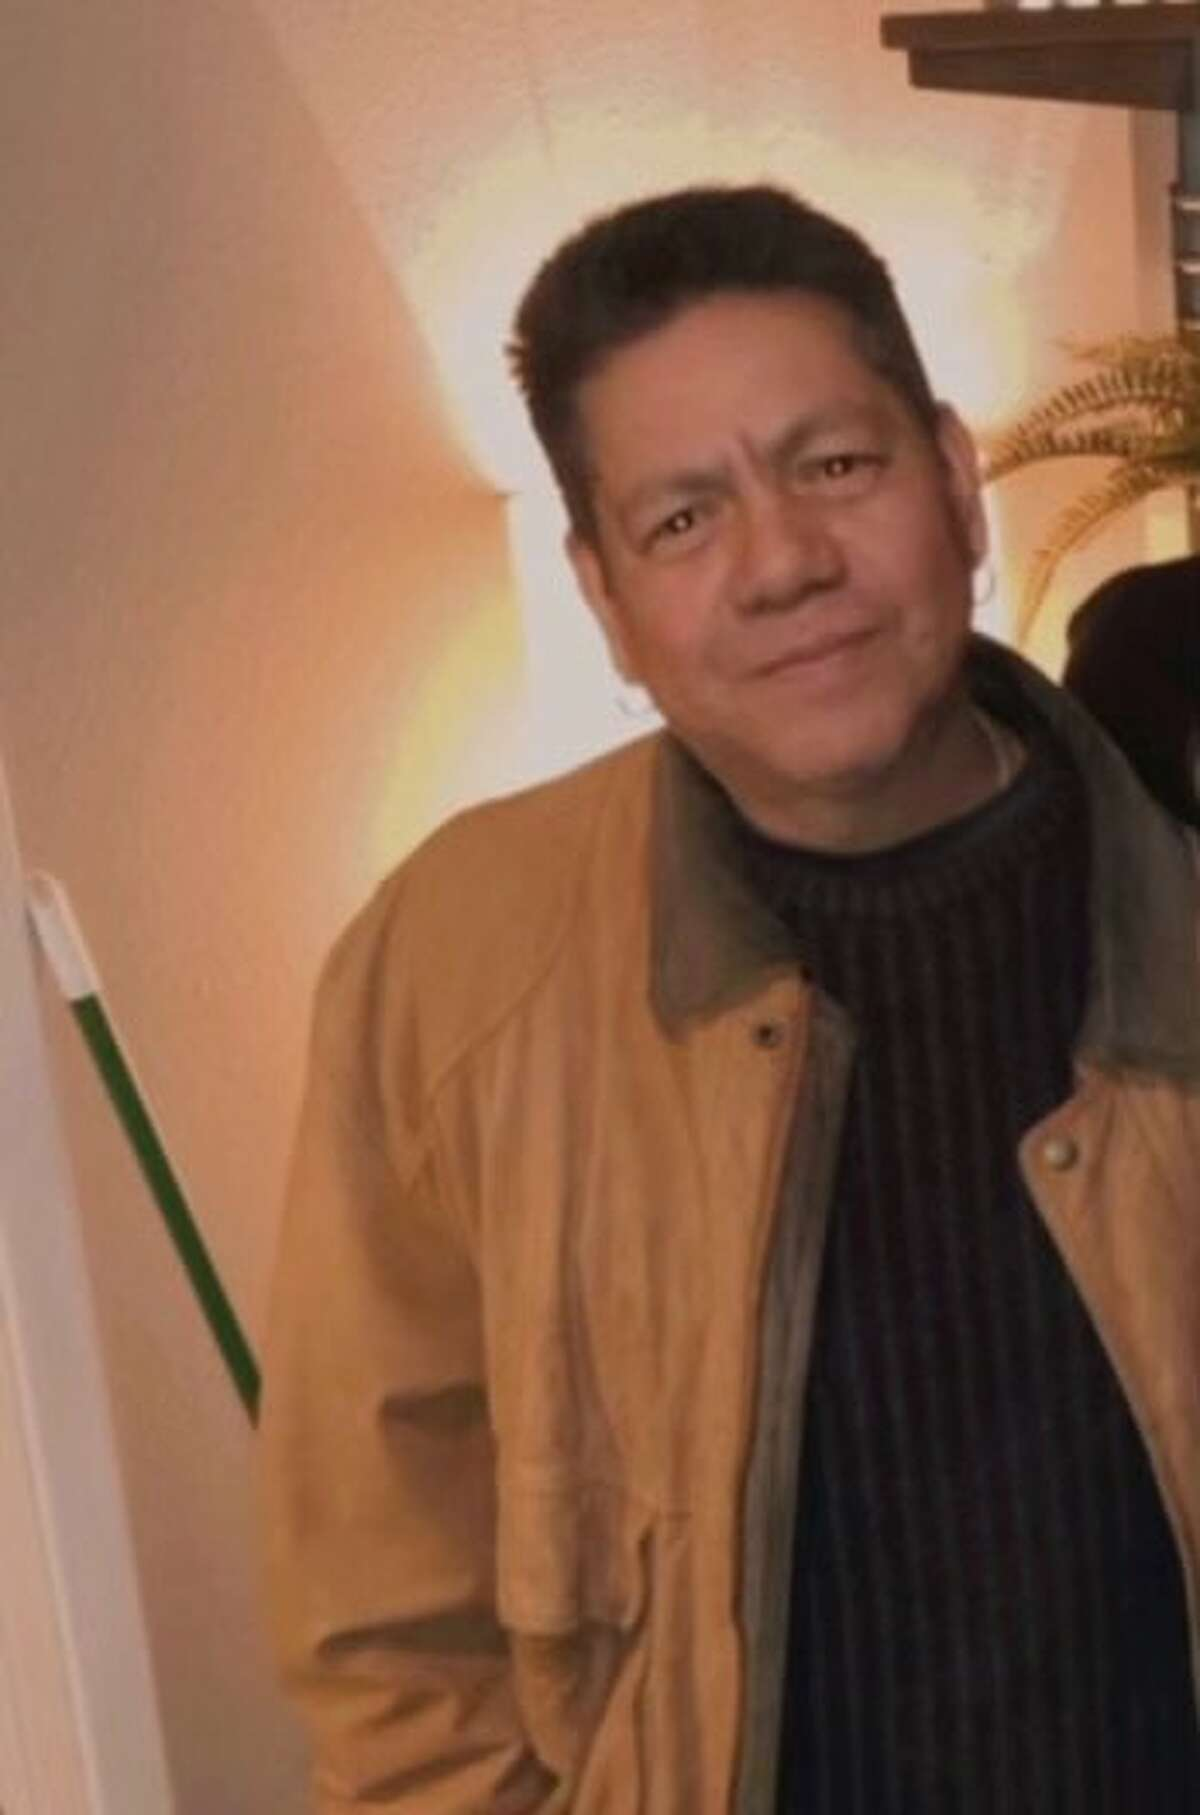 Rene Pecina, 51, died after swimming at a Corpus Christibeach on the Fourth of July.